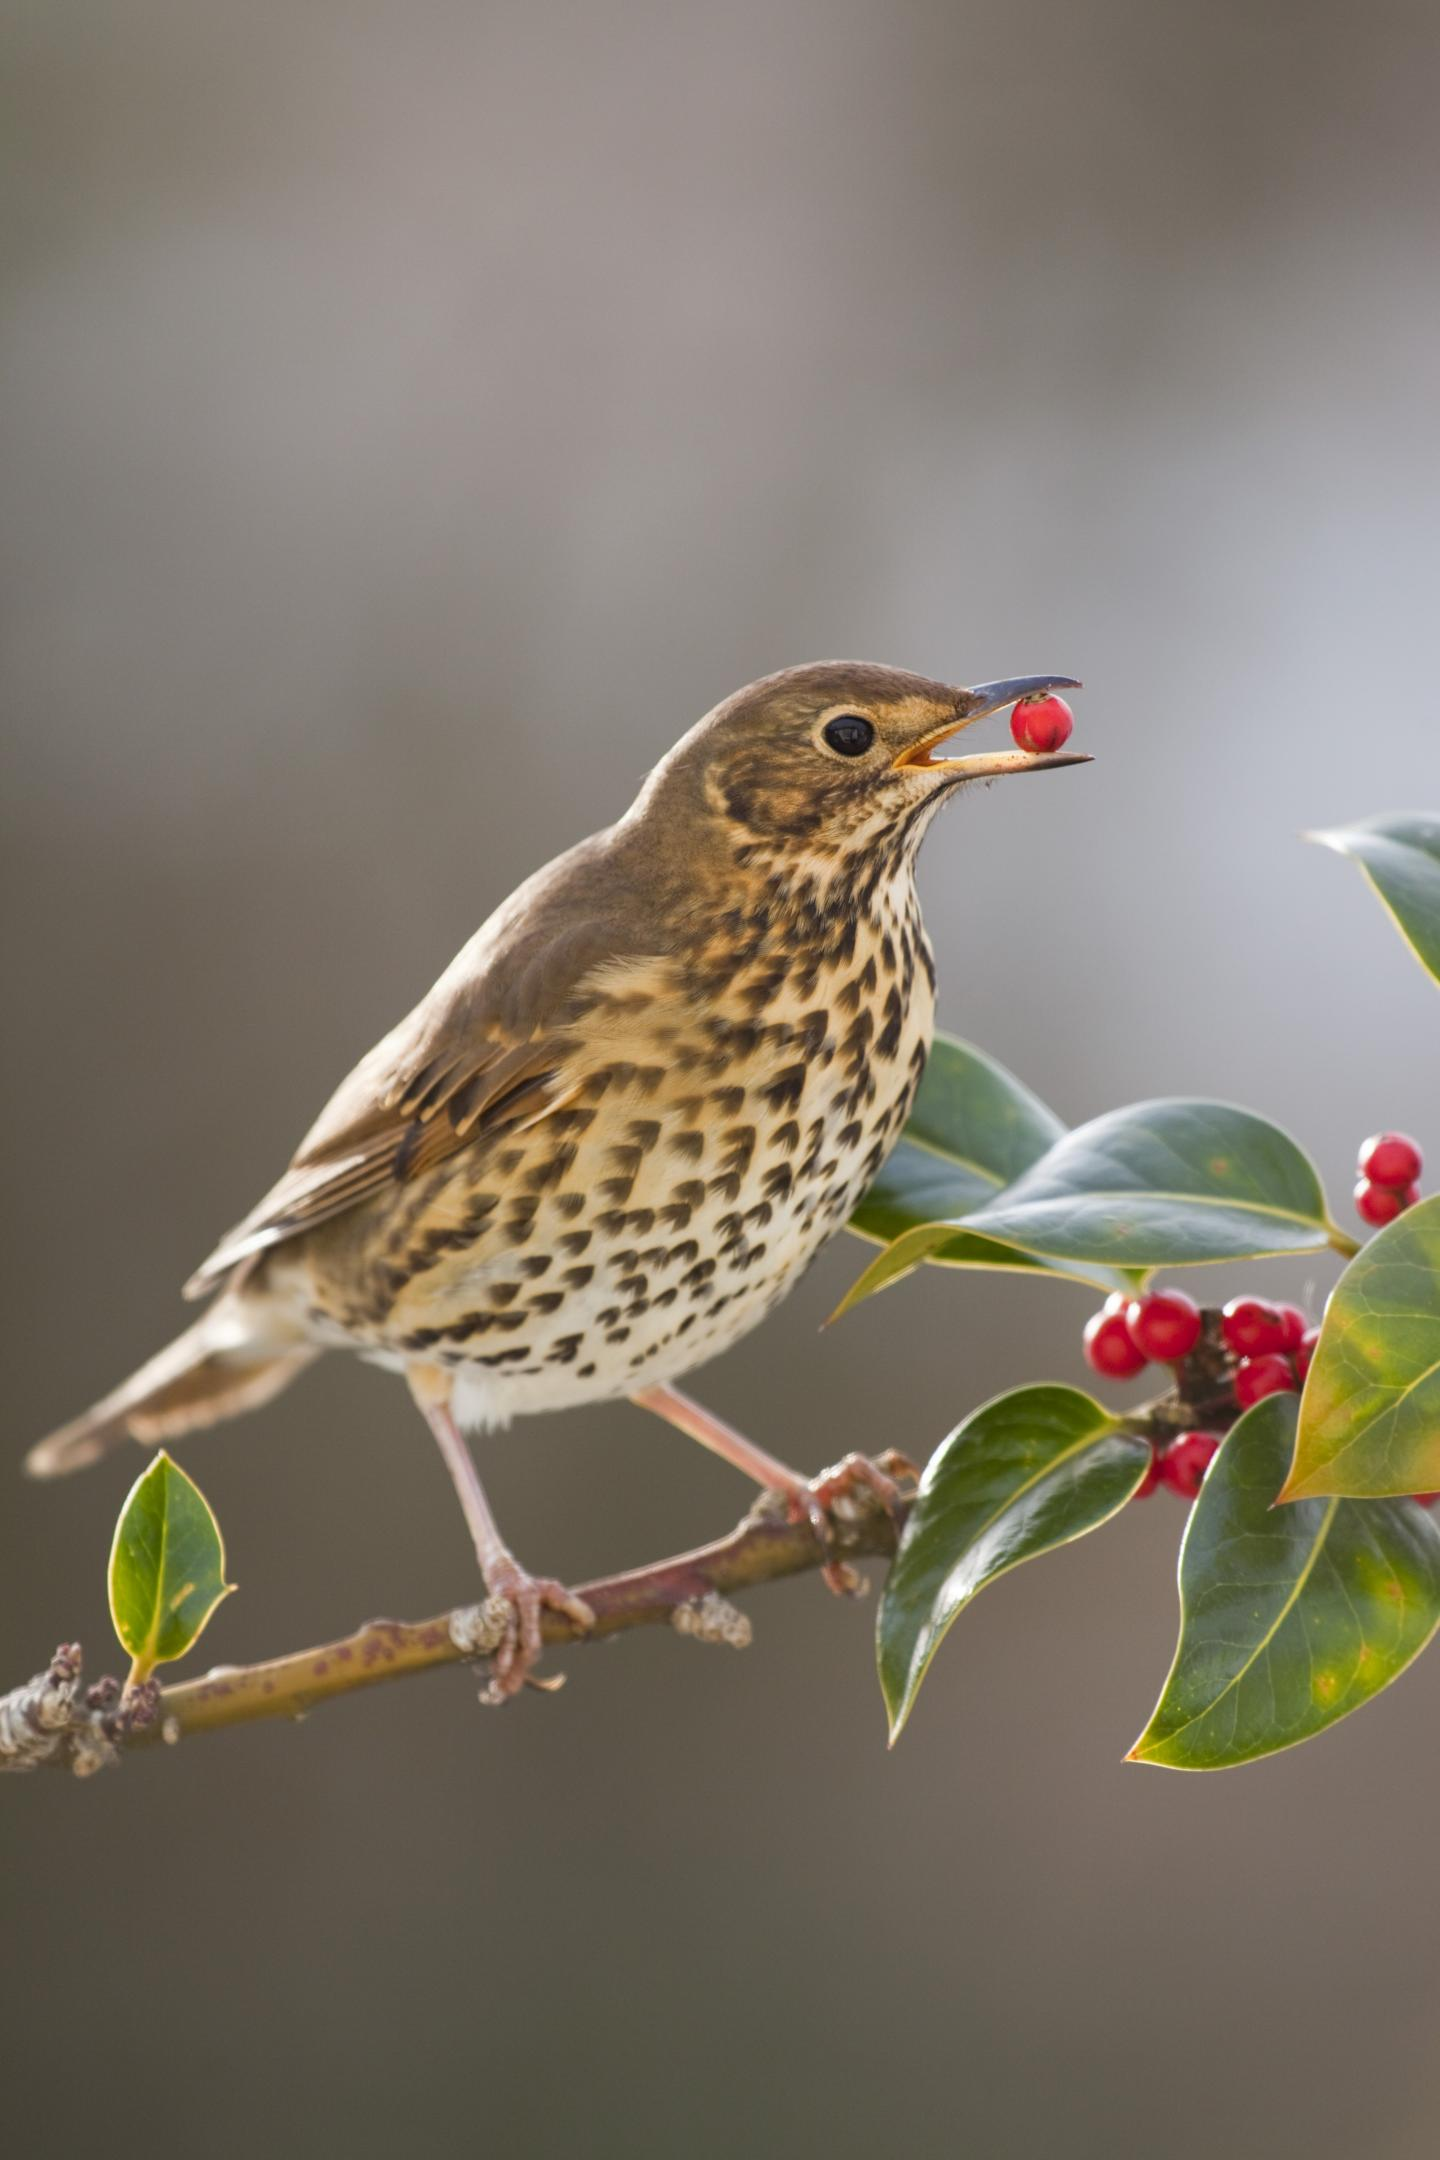 A Song Thrush Eating Holly Fruits